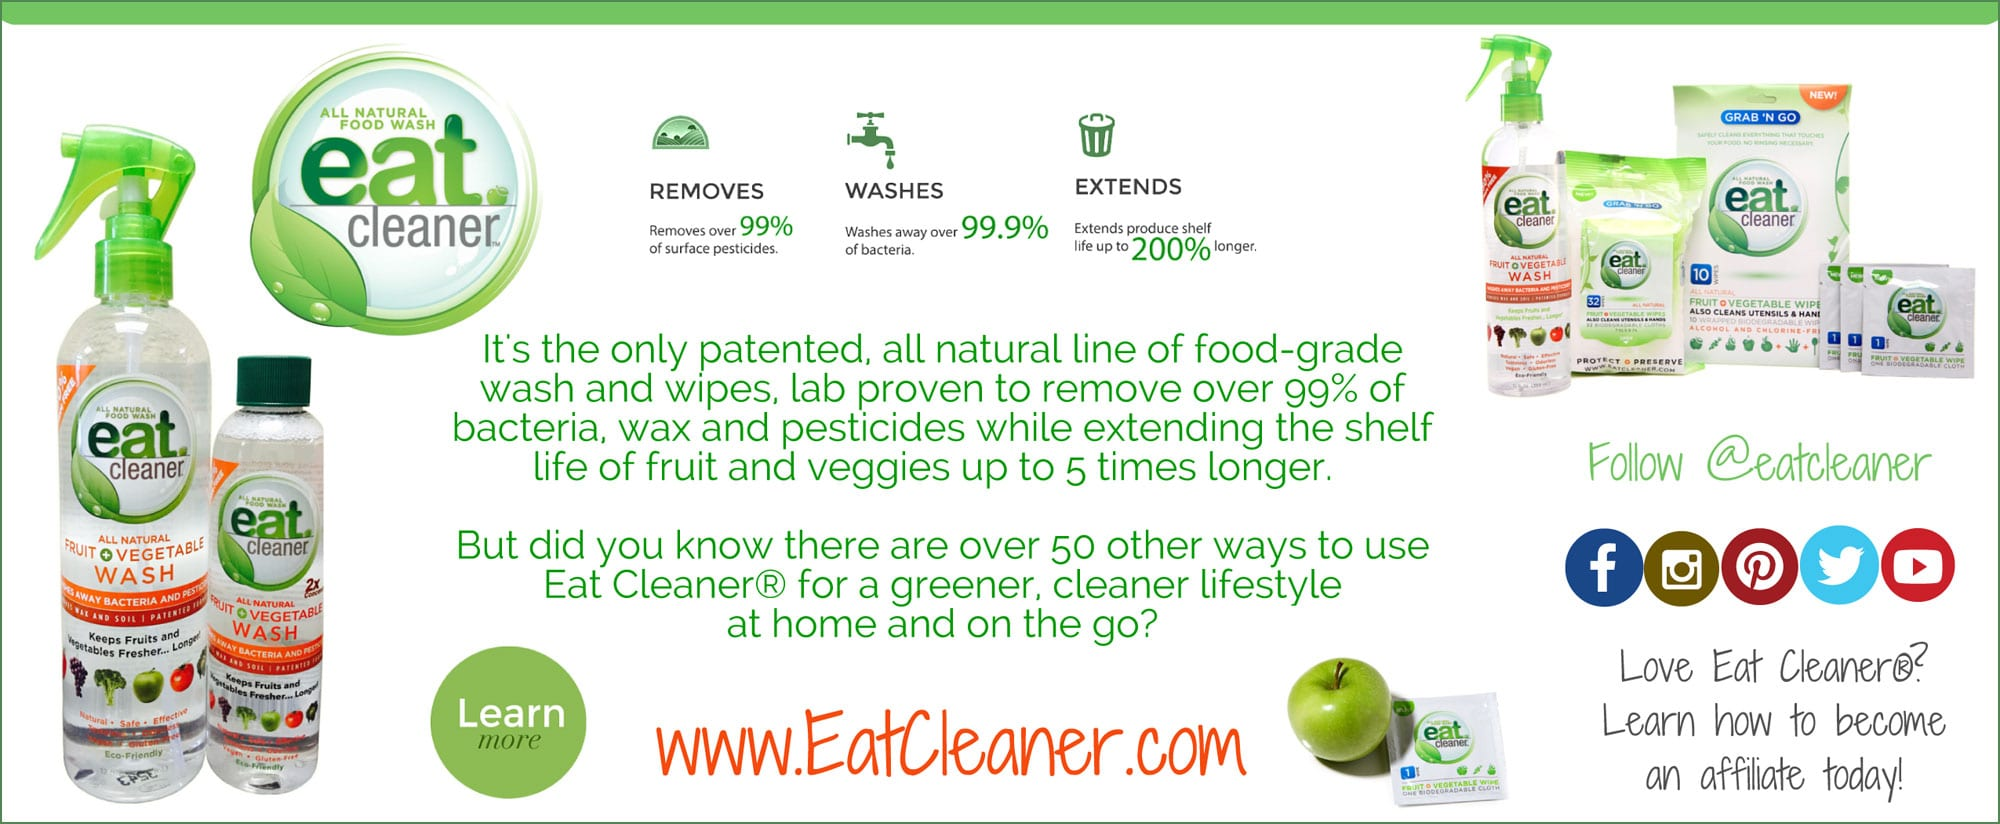 50 Ways to Eat Cleaner